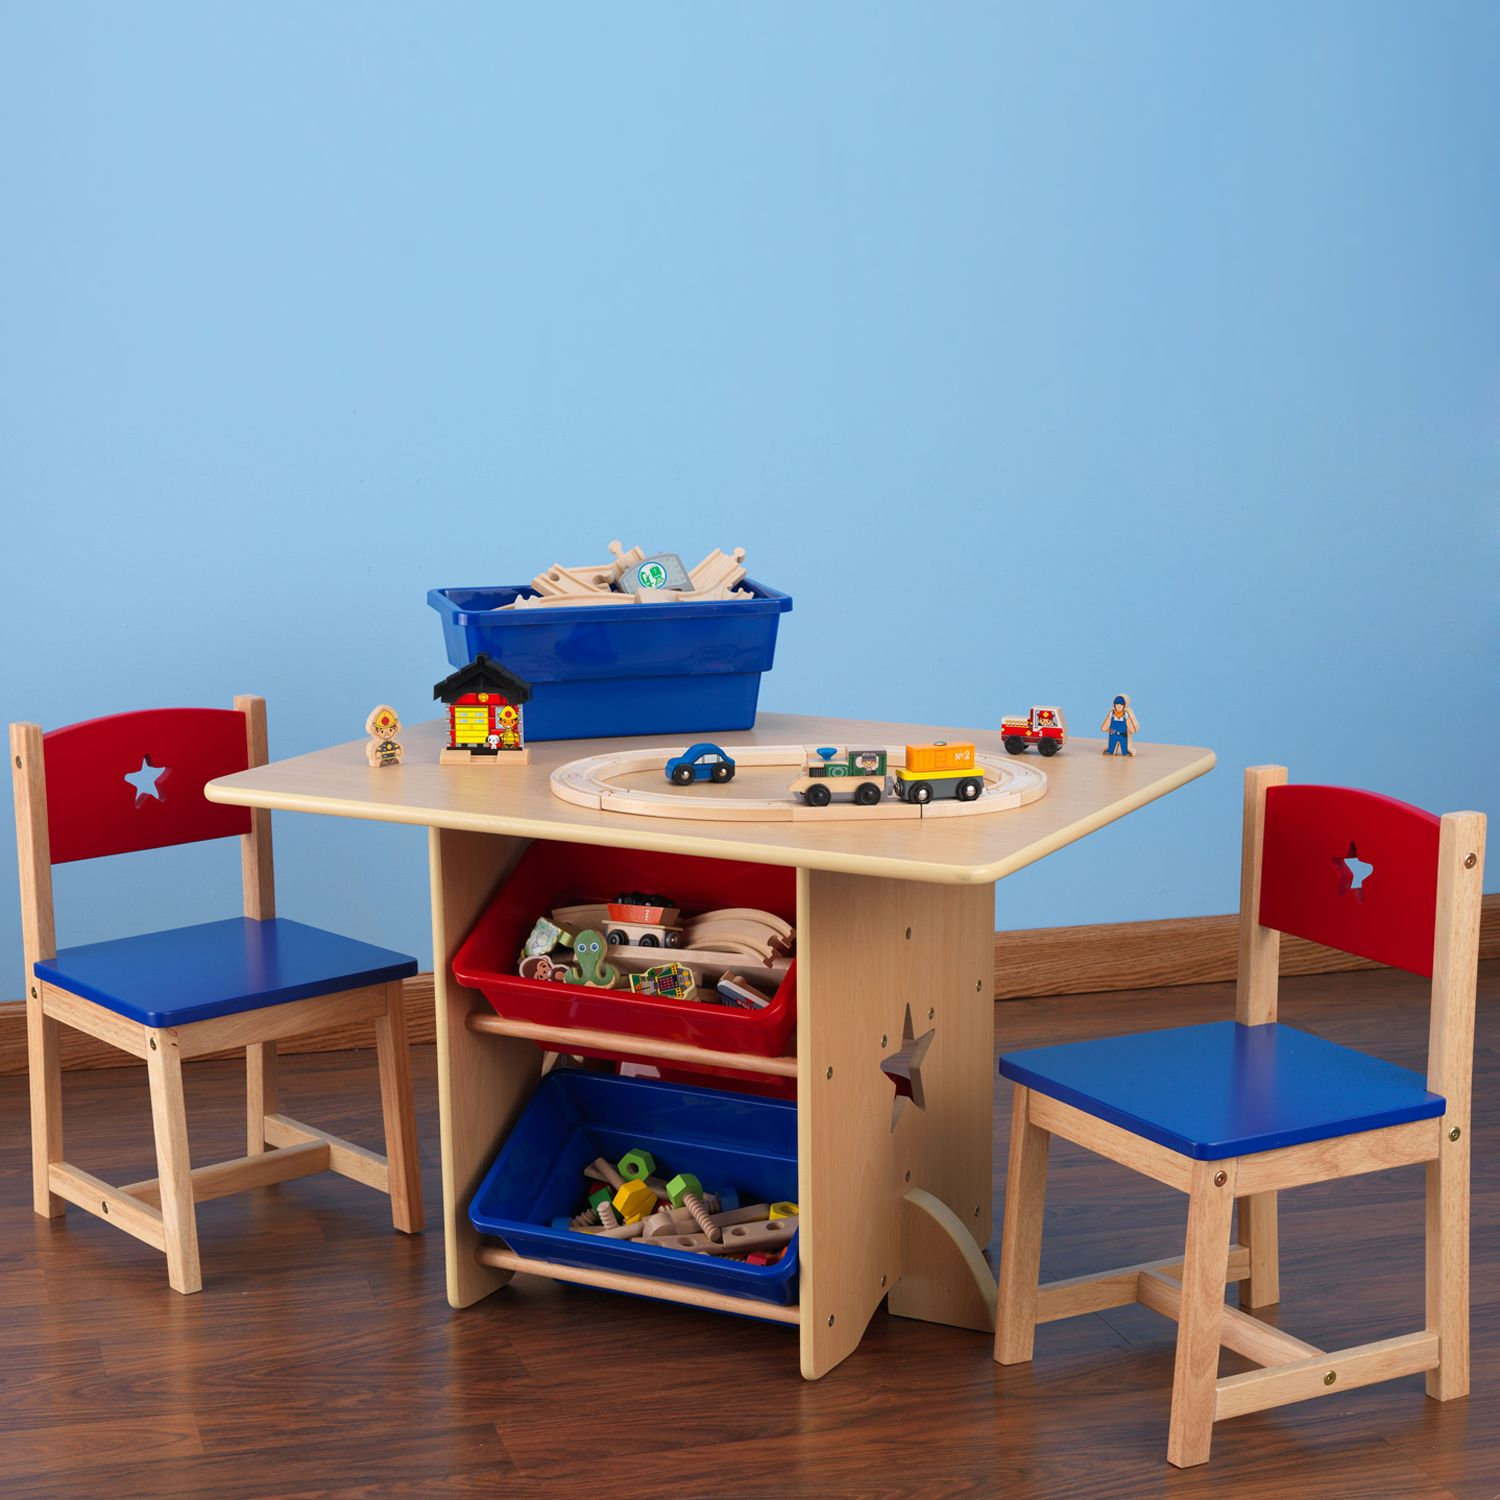 Sale & KidKraft Heart Table u0026 Chair Set